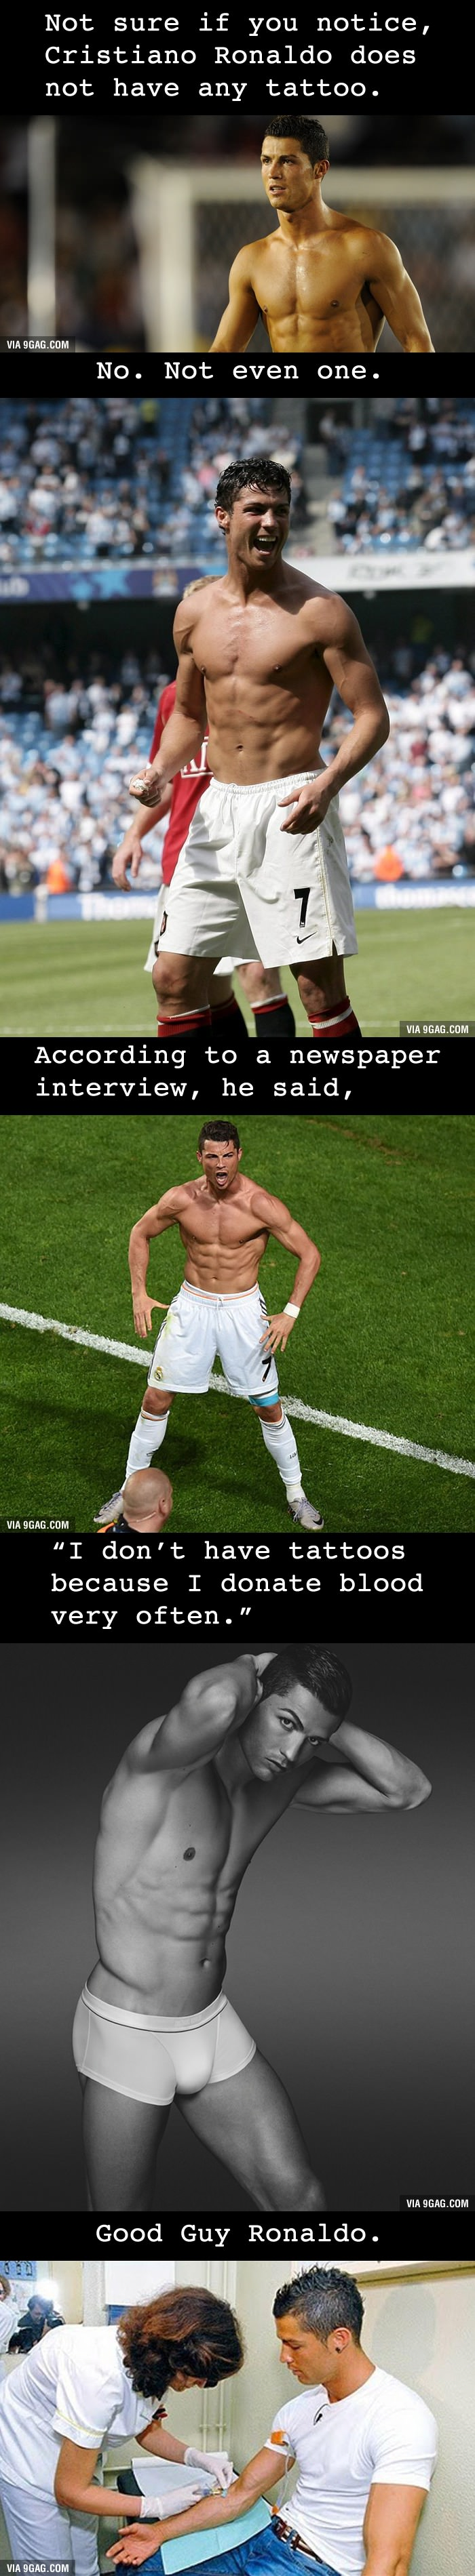 why cristiano ronaldo does not have a tattoo